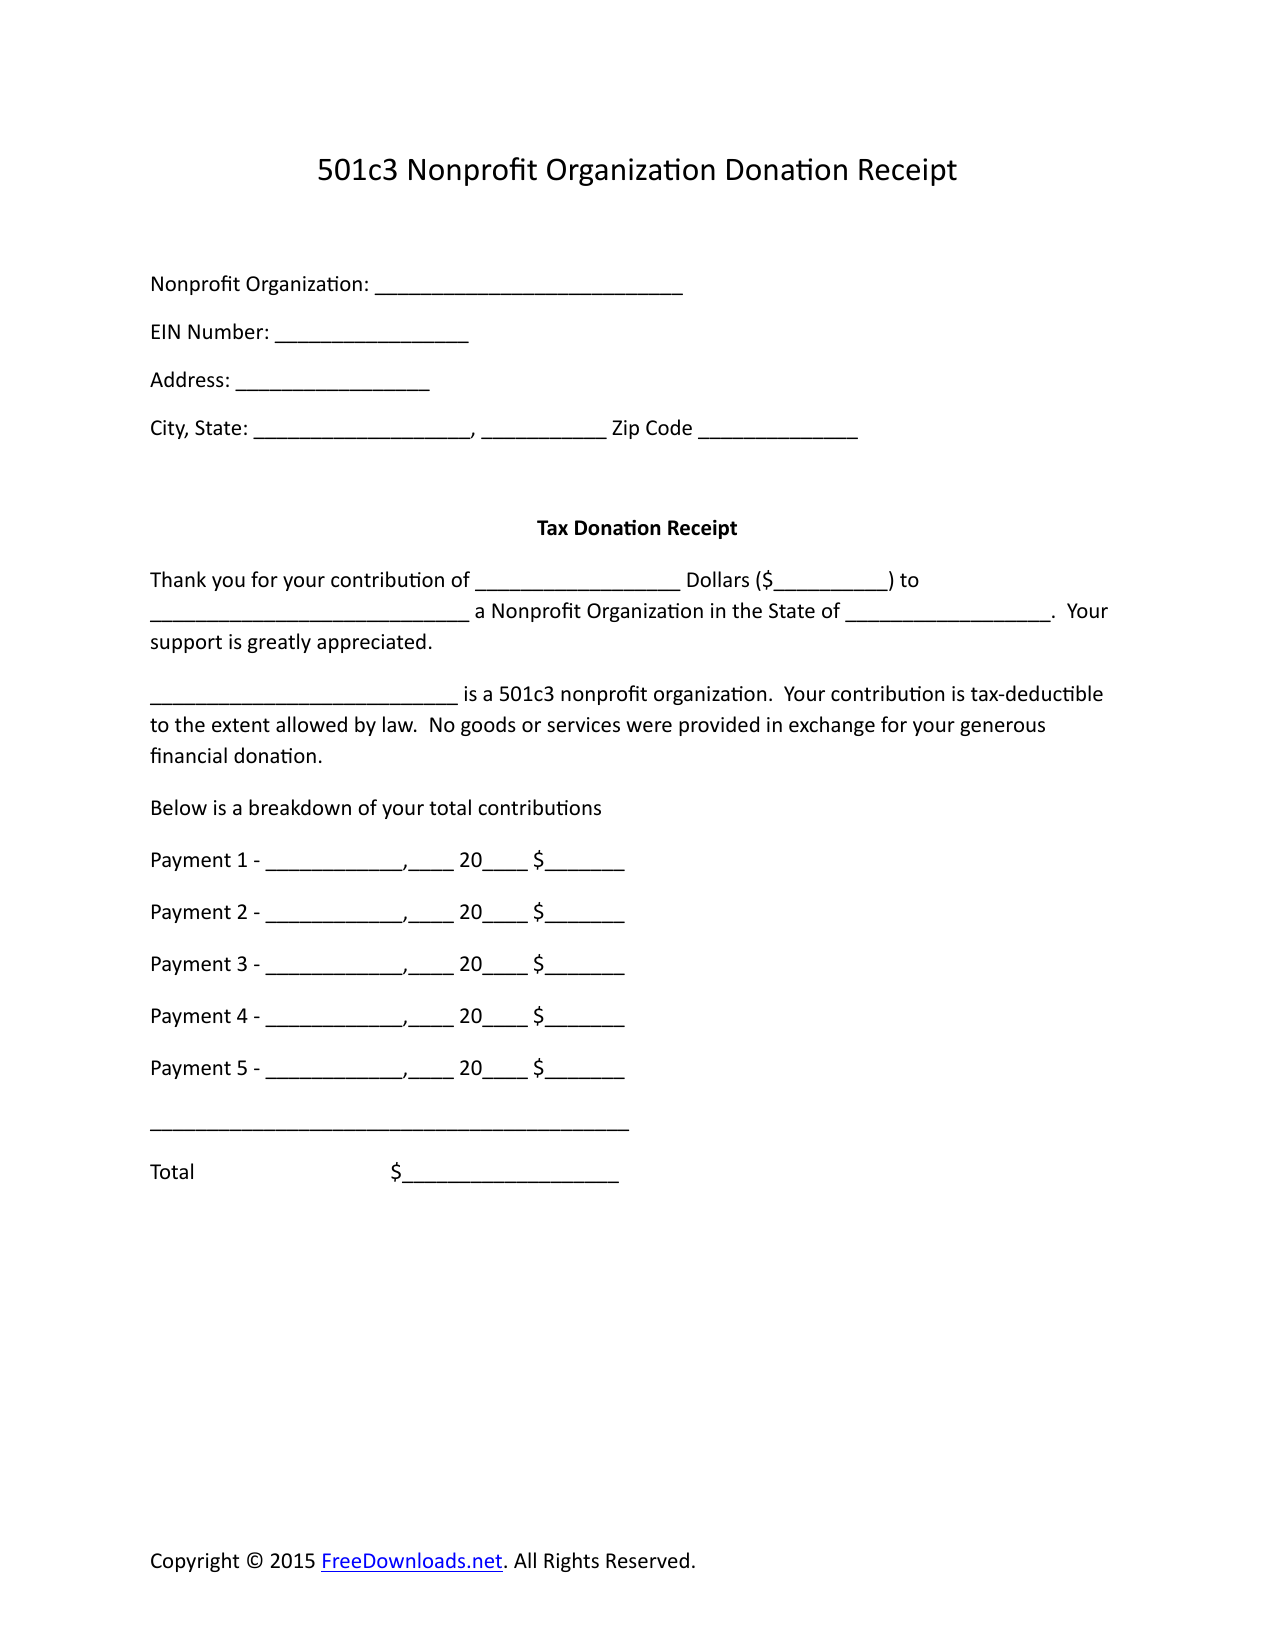 download 501c3 donation receipt letter for tax purposes pdf rtf